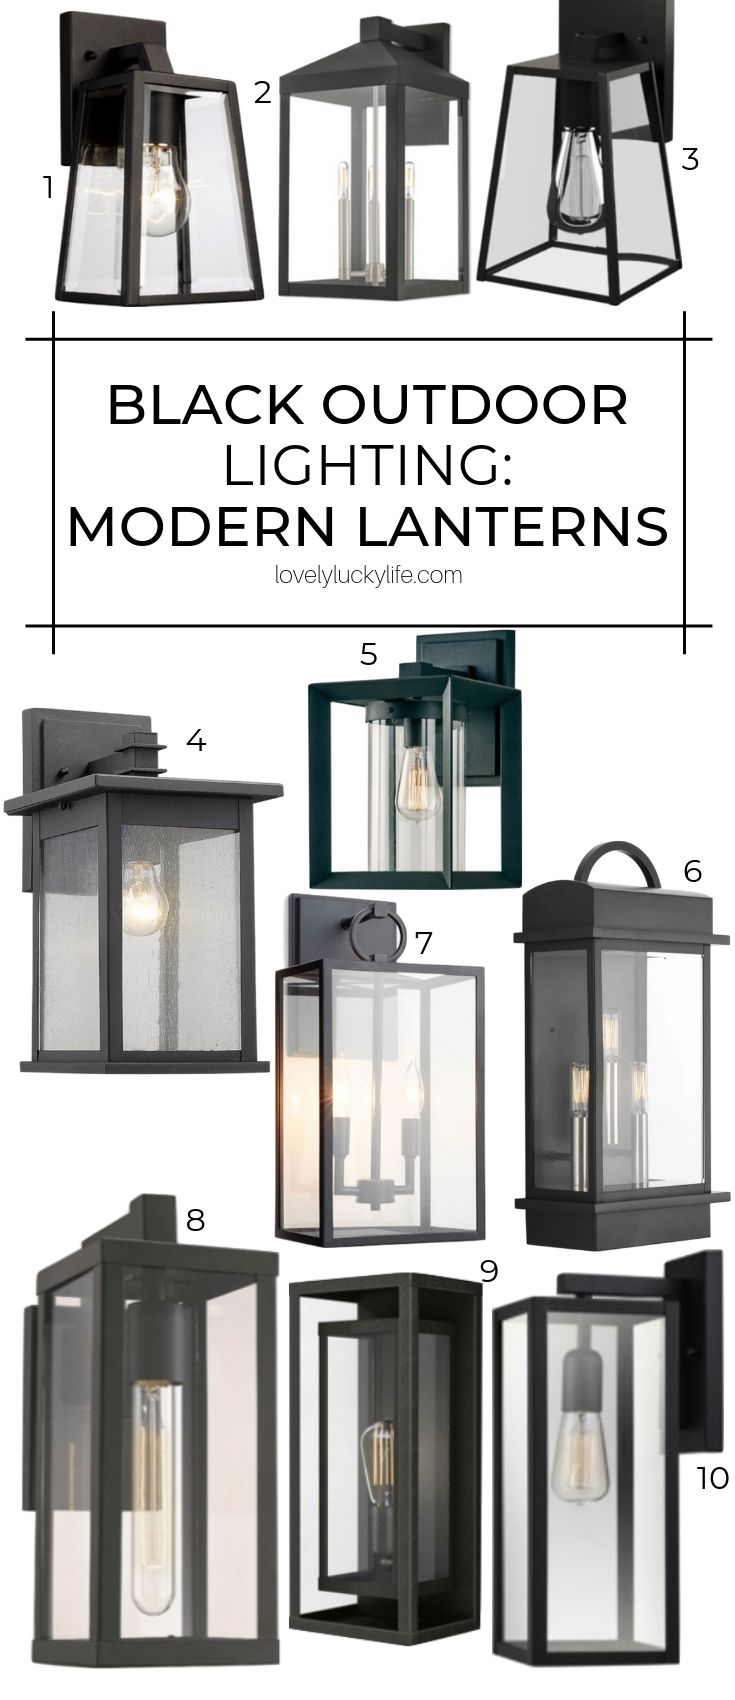 love these modern classic black outdoor sconces and lanterns as an alternative to farmhouse lighting! these still have a vintage industrial vibe but aren't as 'Fixer Upper' as farmhouse